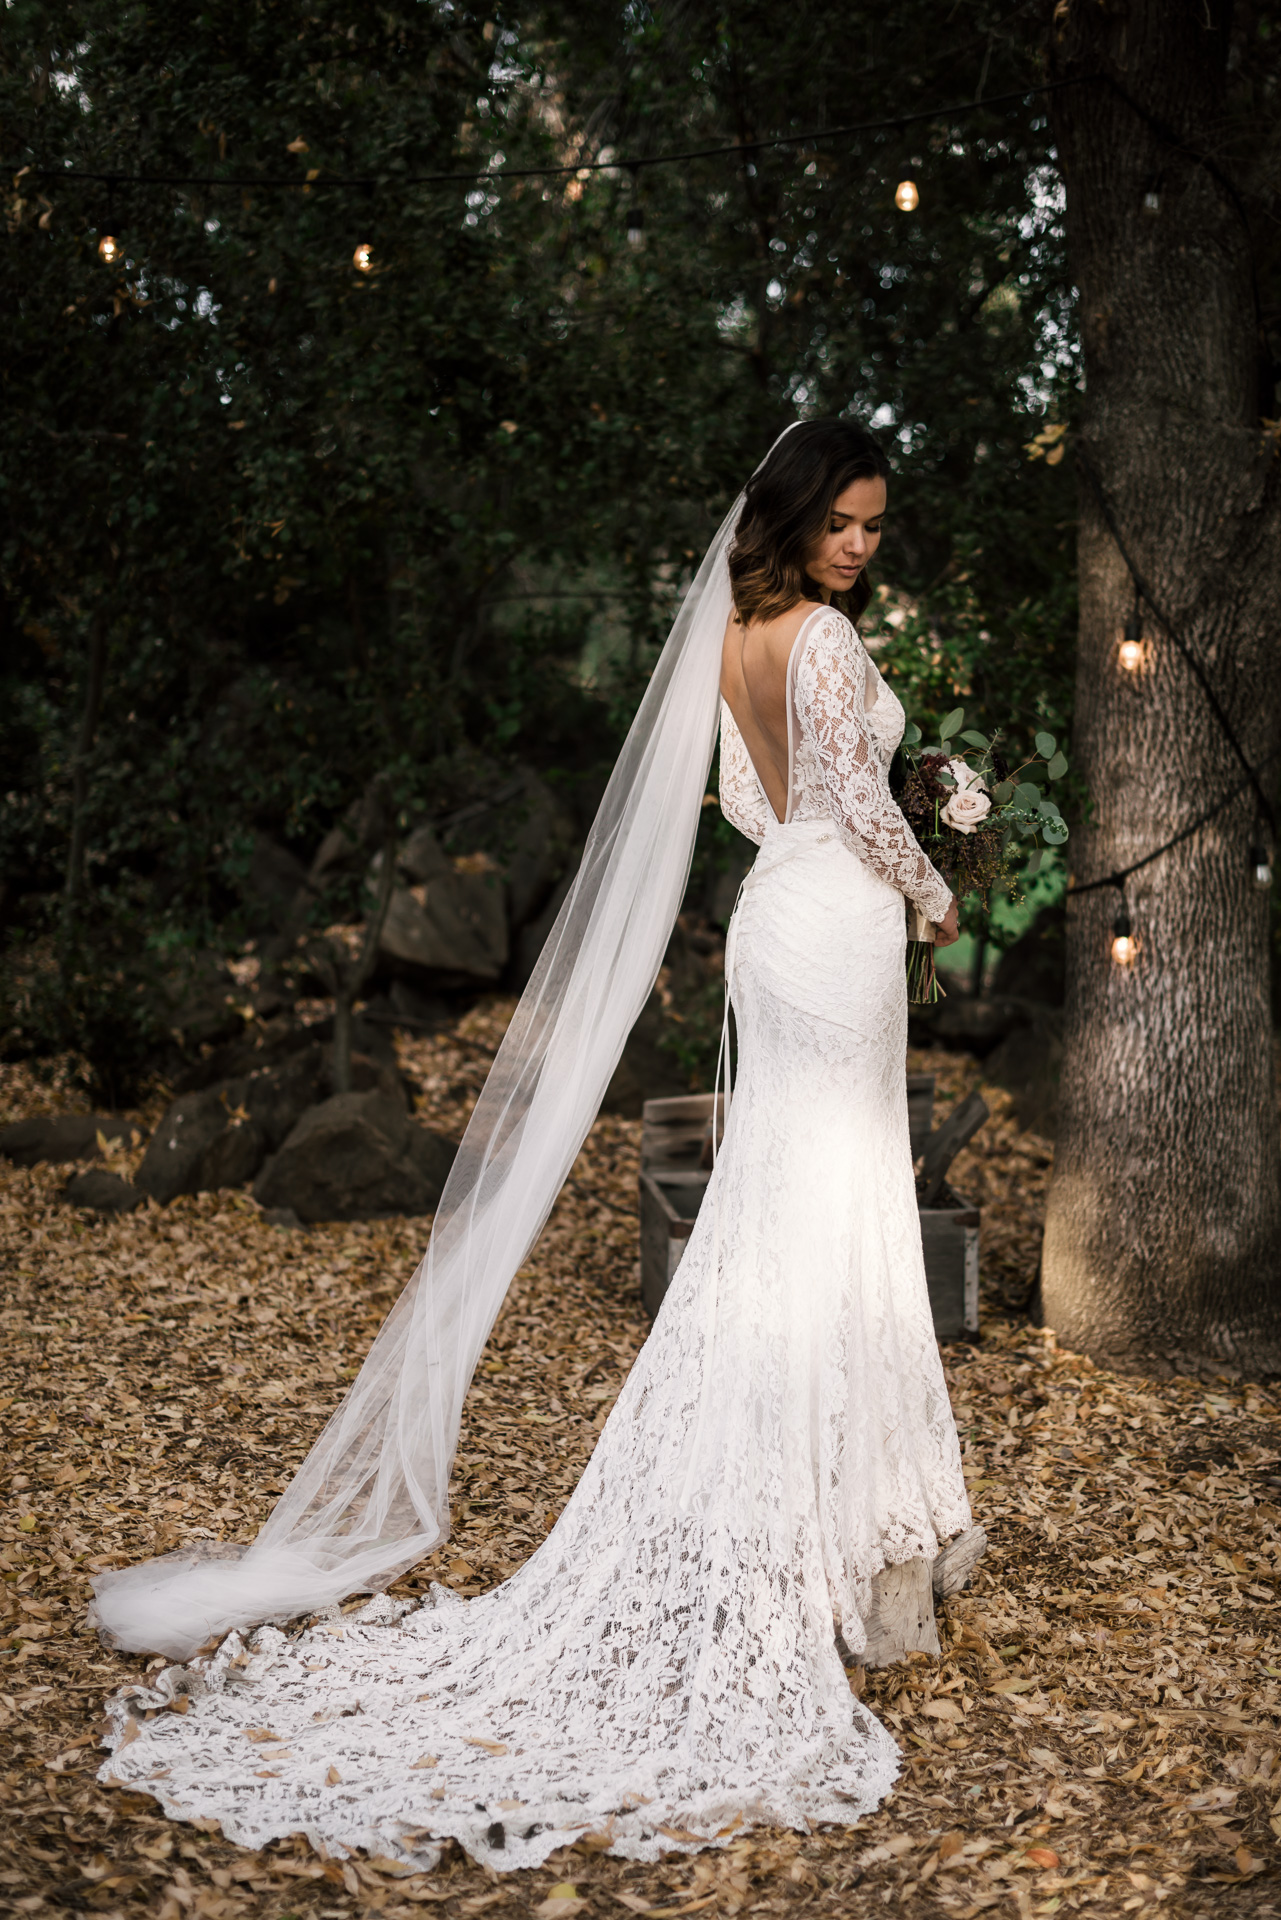 Bride shows off her lace dress at rustic pymm ranch wedding venue in Winchester california